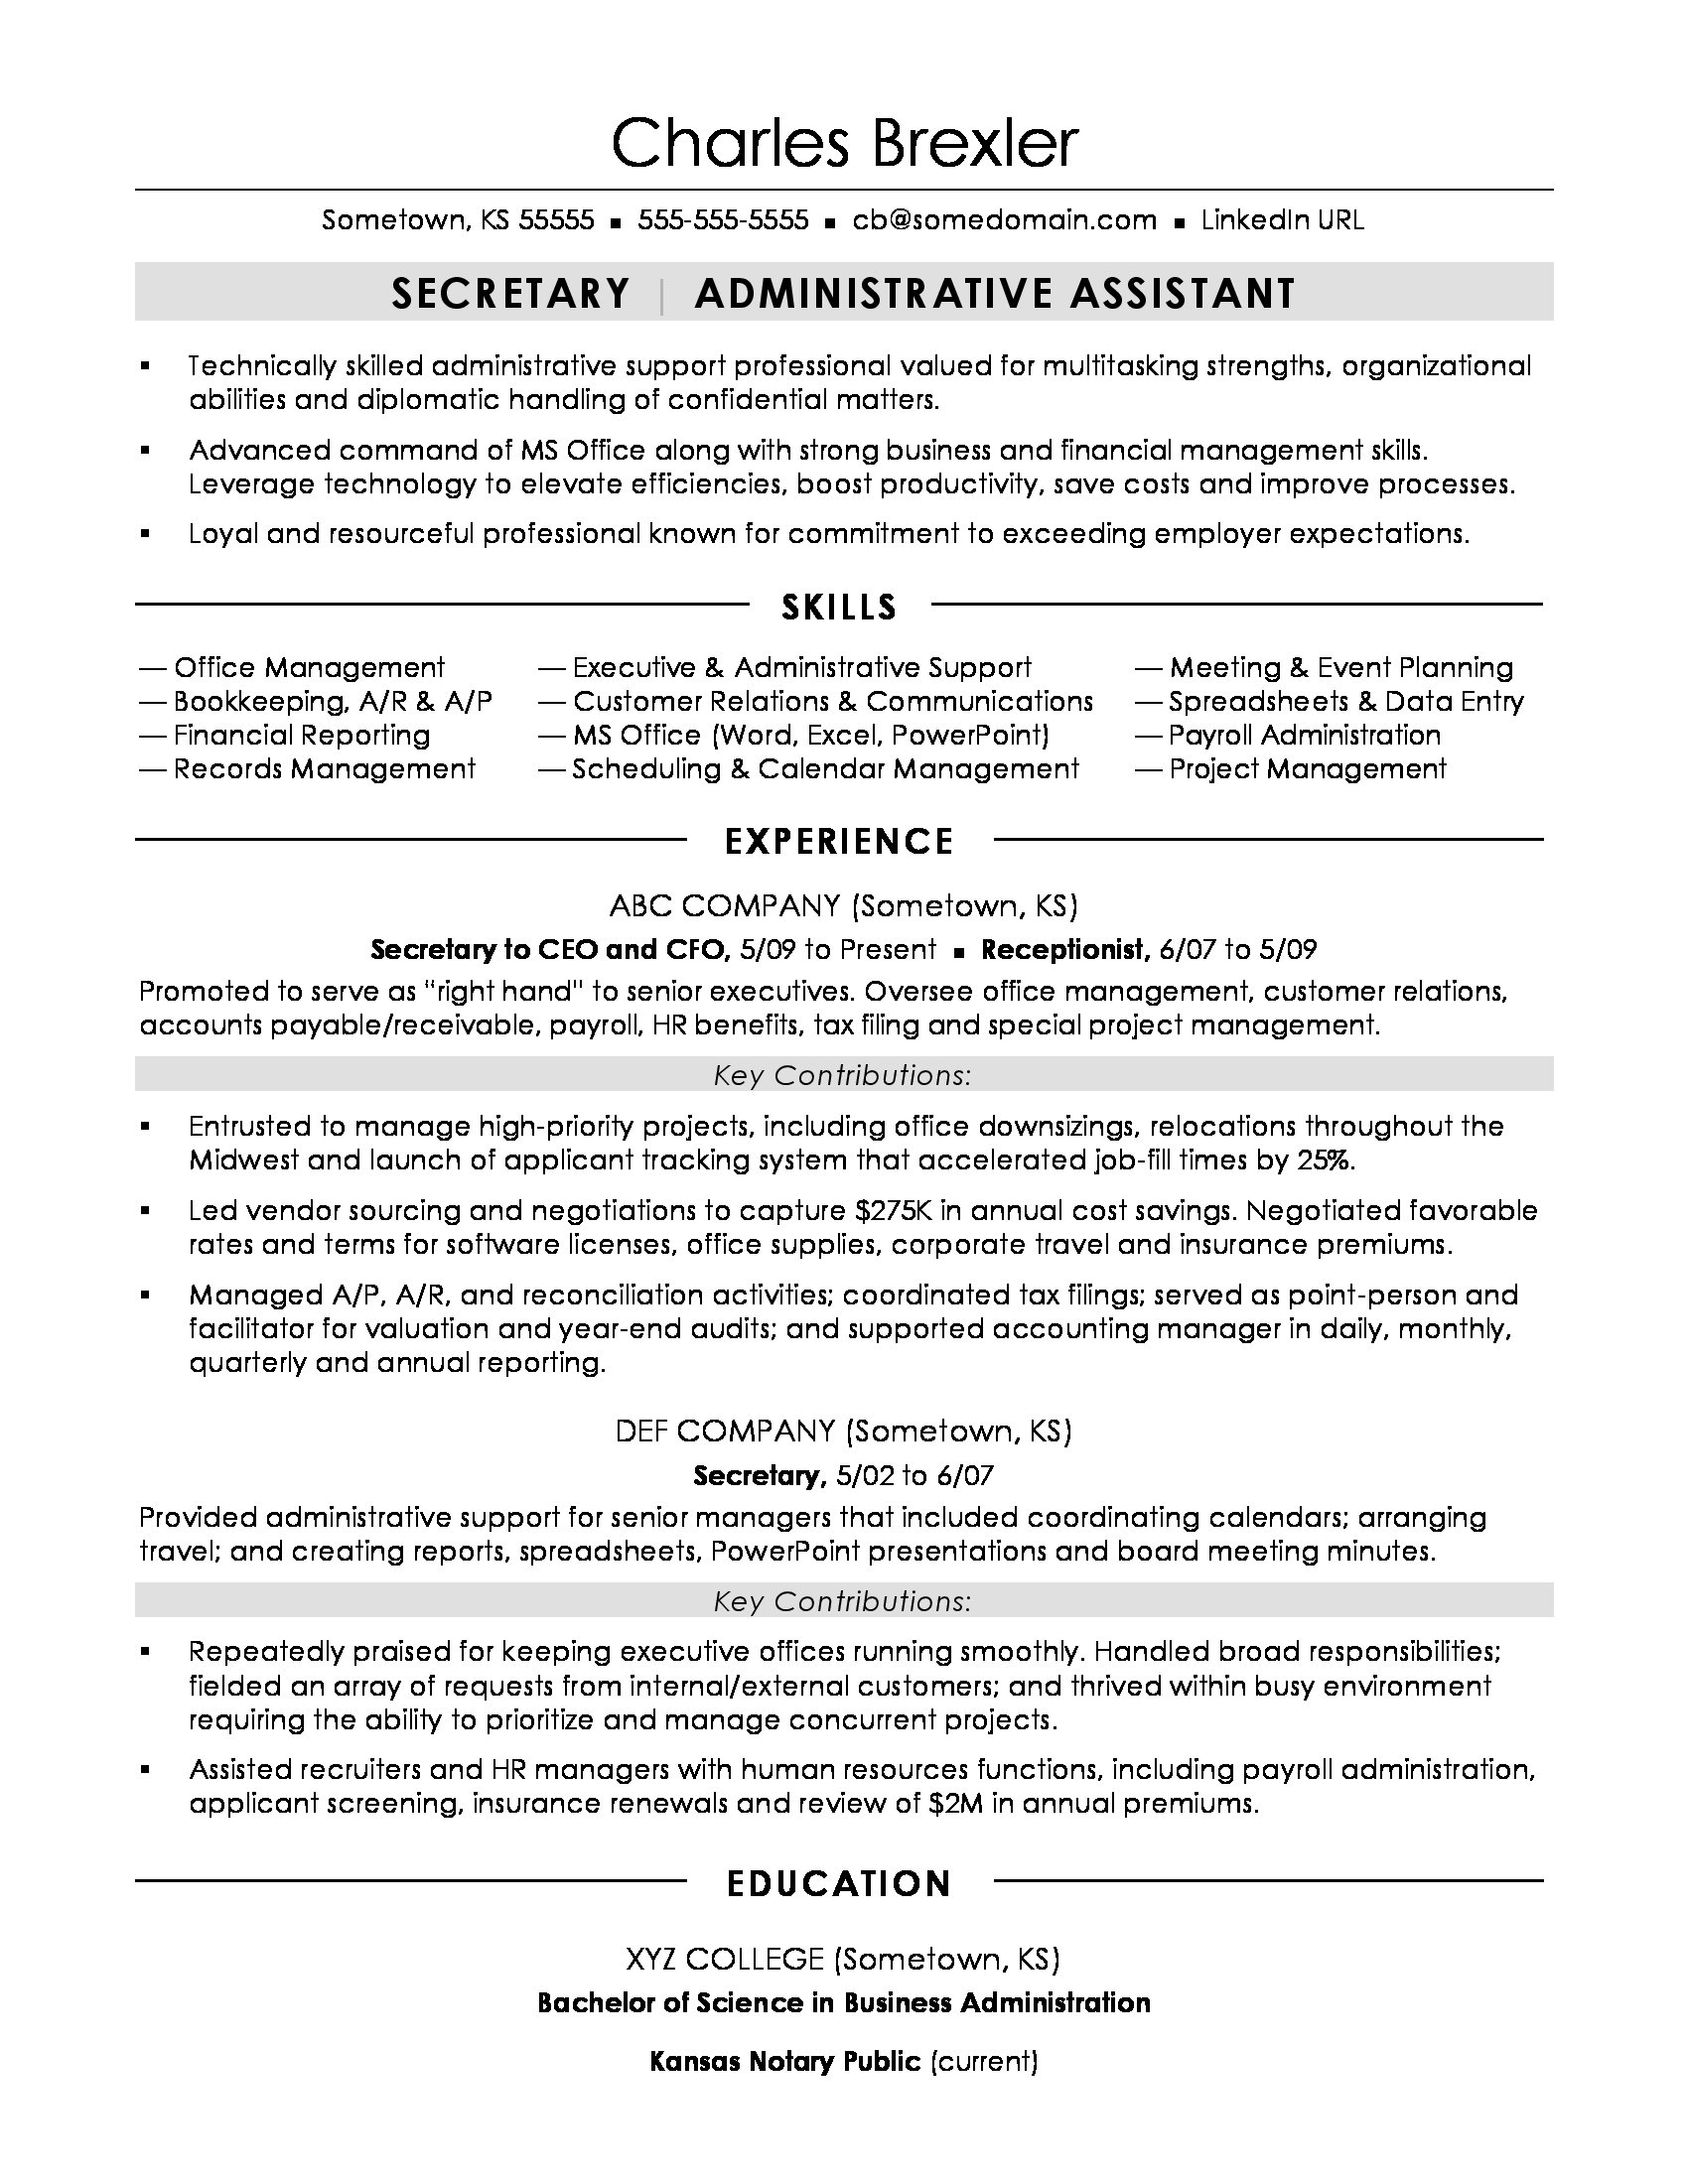 secretary resume sample monster for executive position school librarian objective crm Resume Sample Resume For Executive Secretary Position